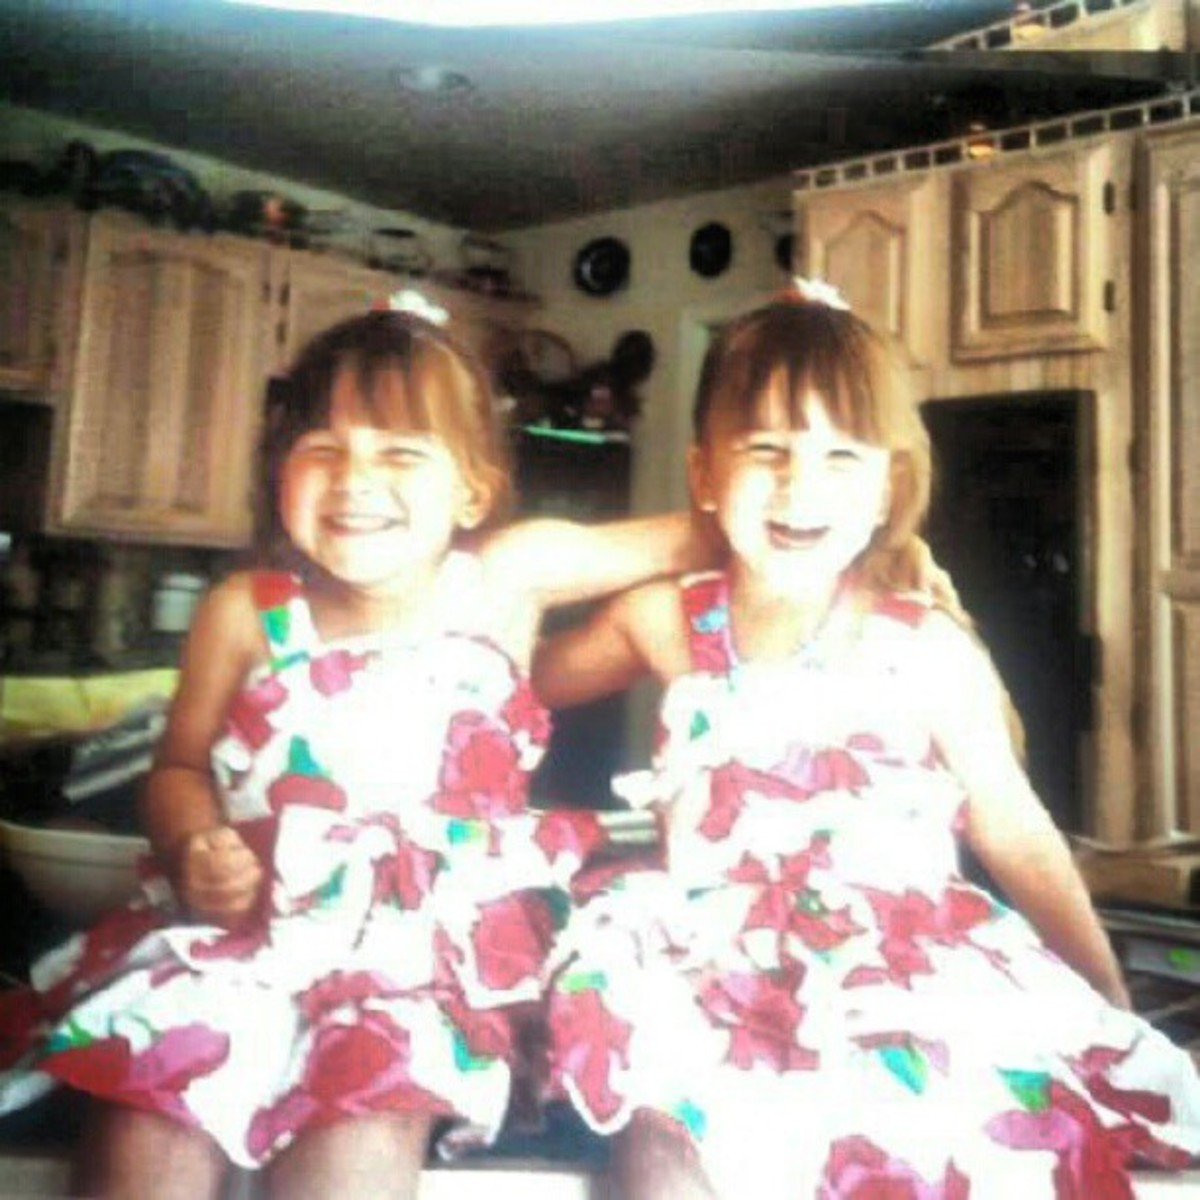 Happy twins! (Me on the left, my sister on the right)